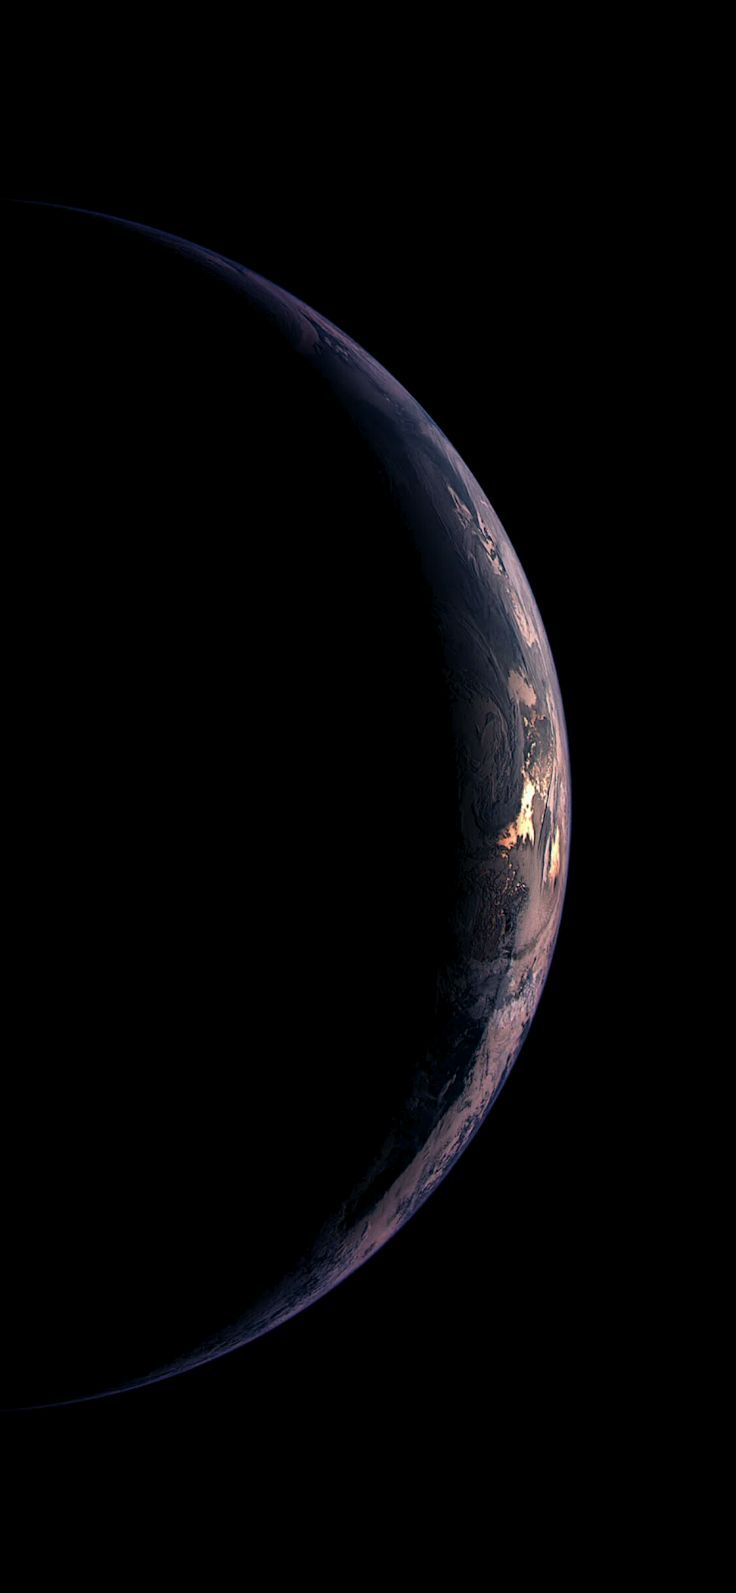 Earth For Iphone X Xs For Amoled Display Wallpaper Space